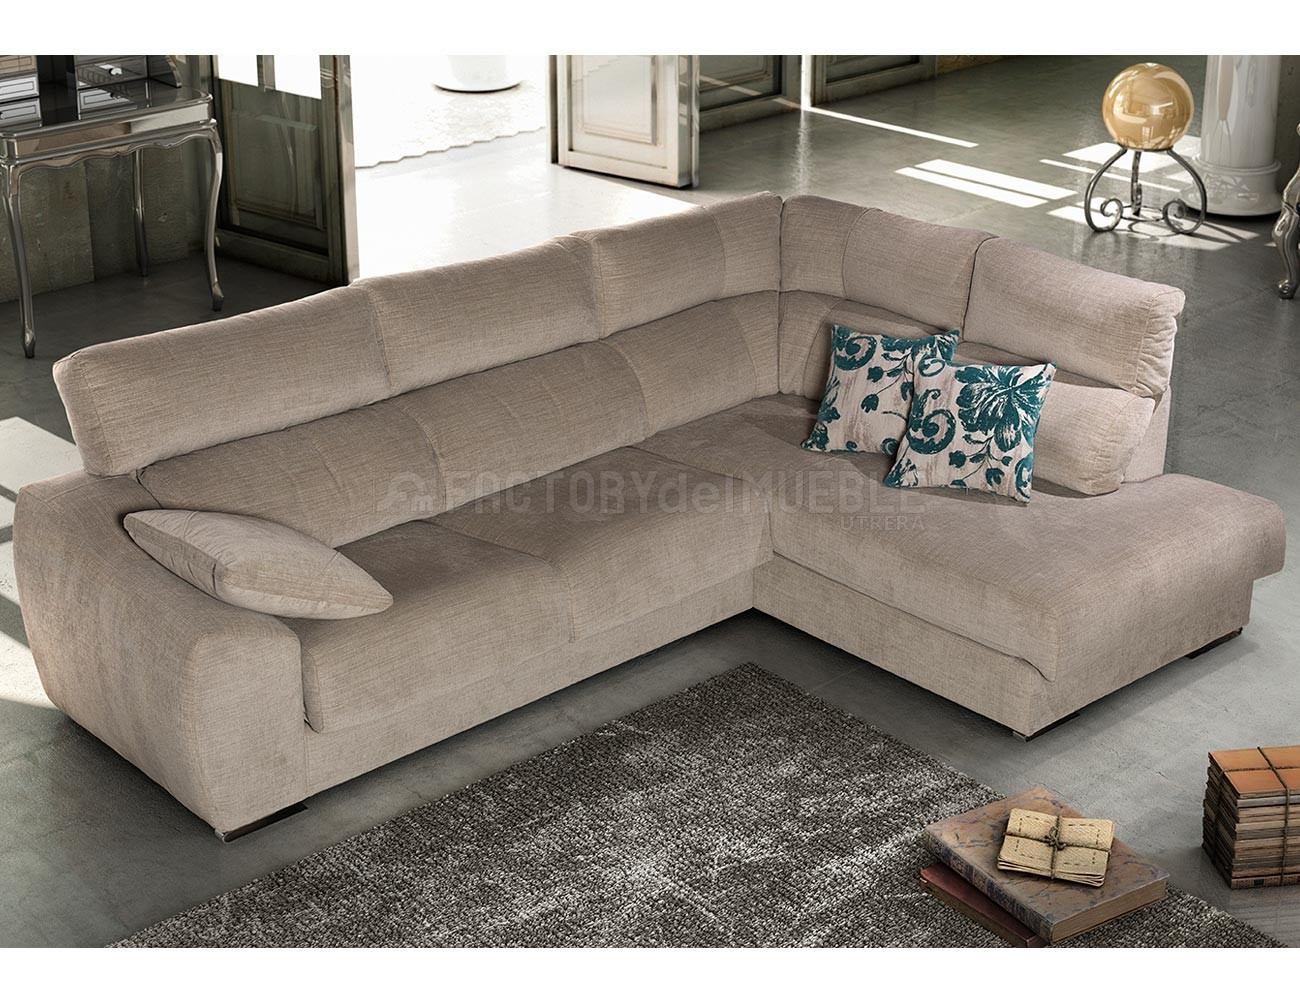 Sofa chaiselongue rincon moderno forma12